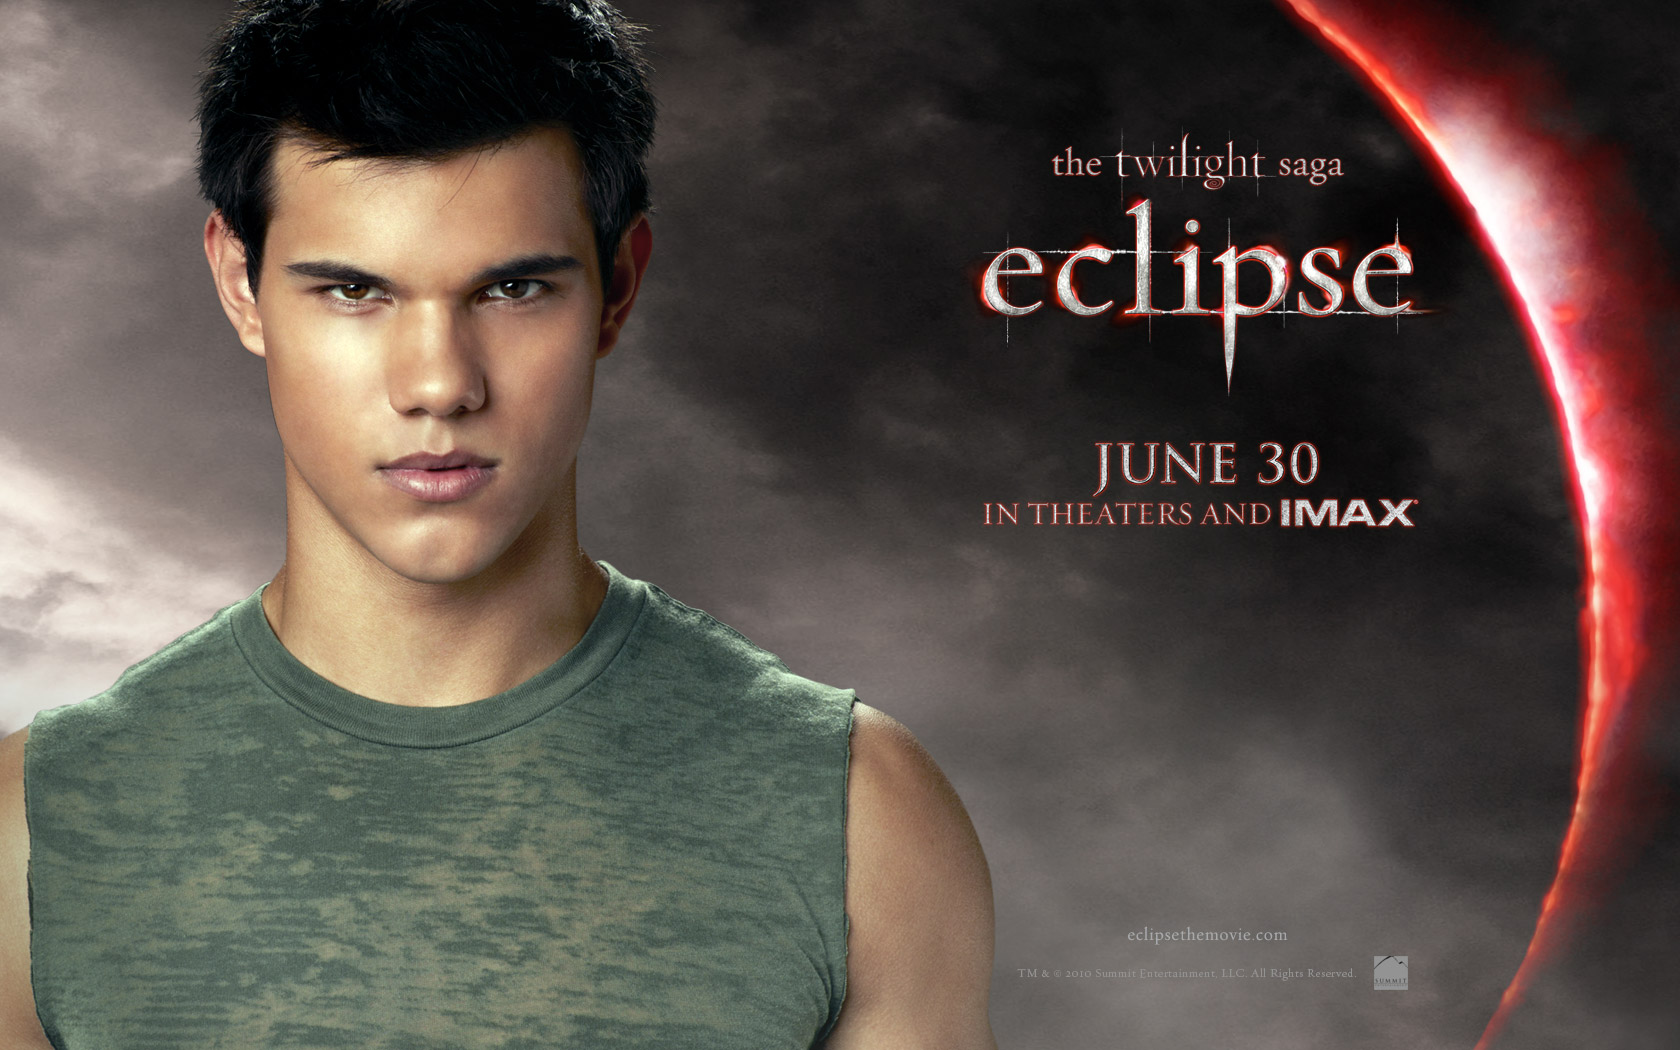 Jacob from Twilight Eclipse Desktop Wallpaper 1680x1050